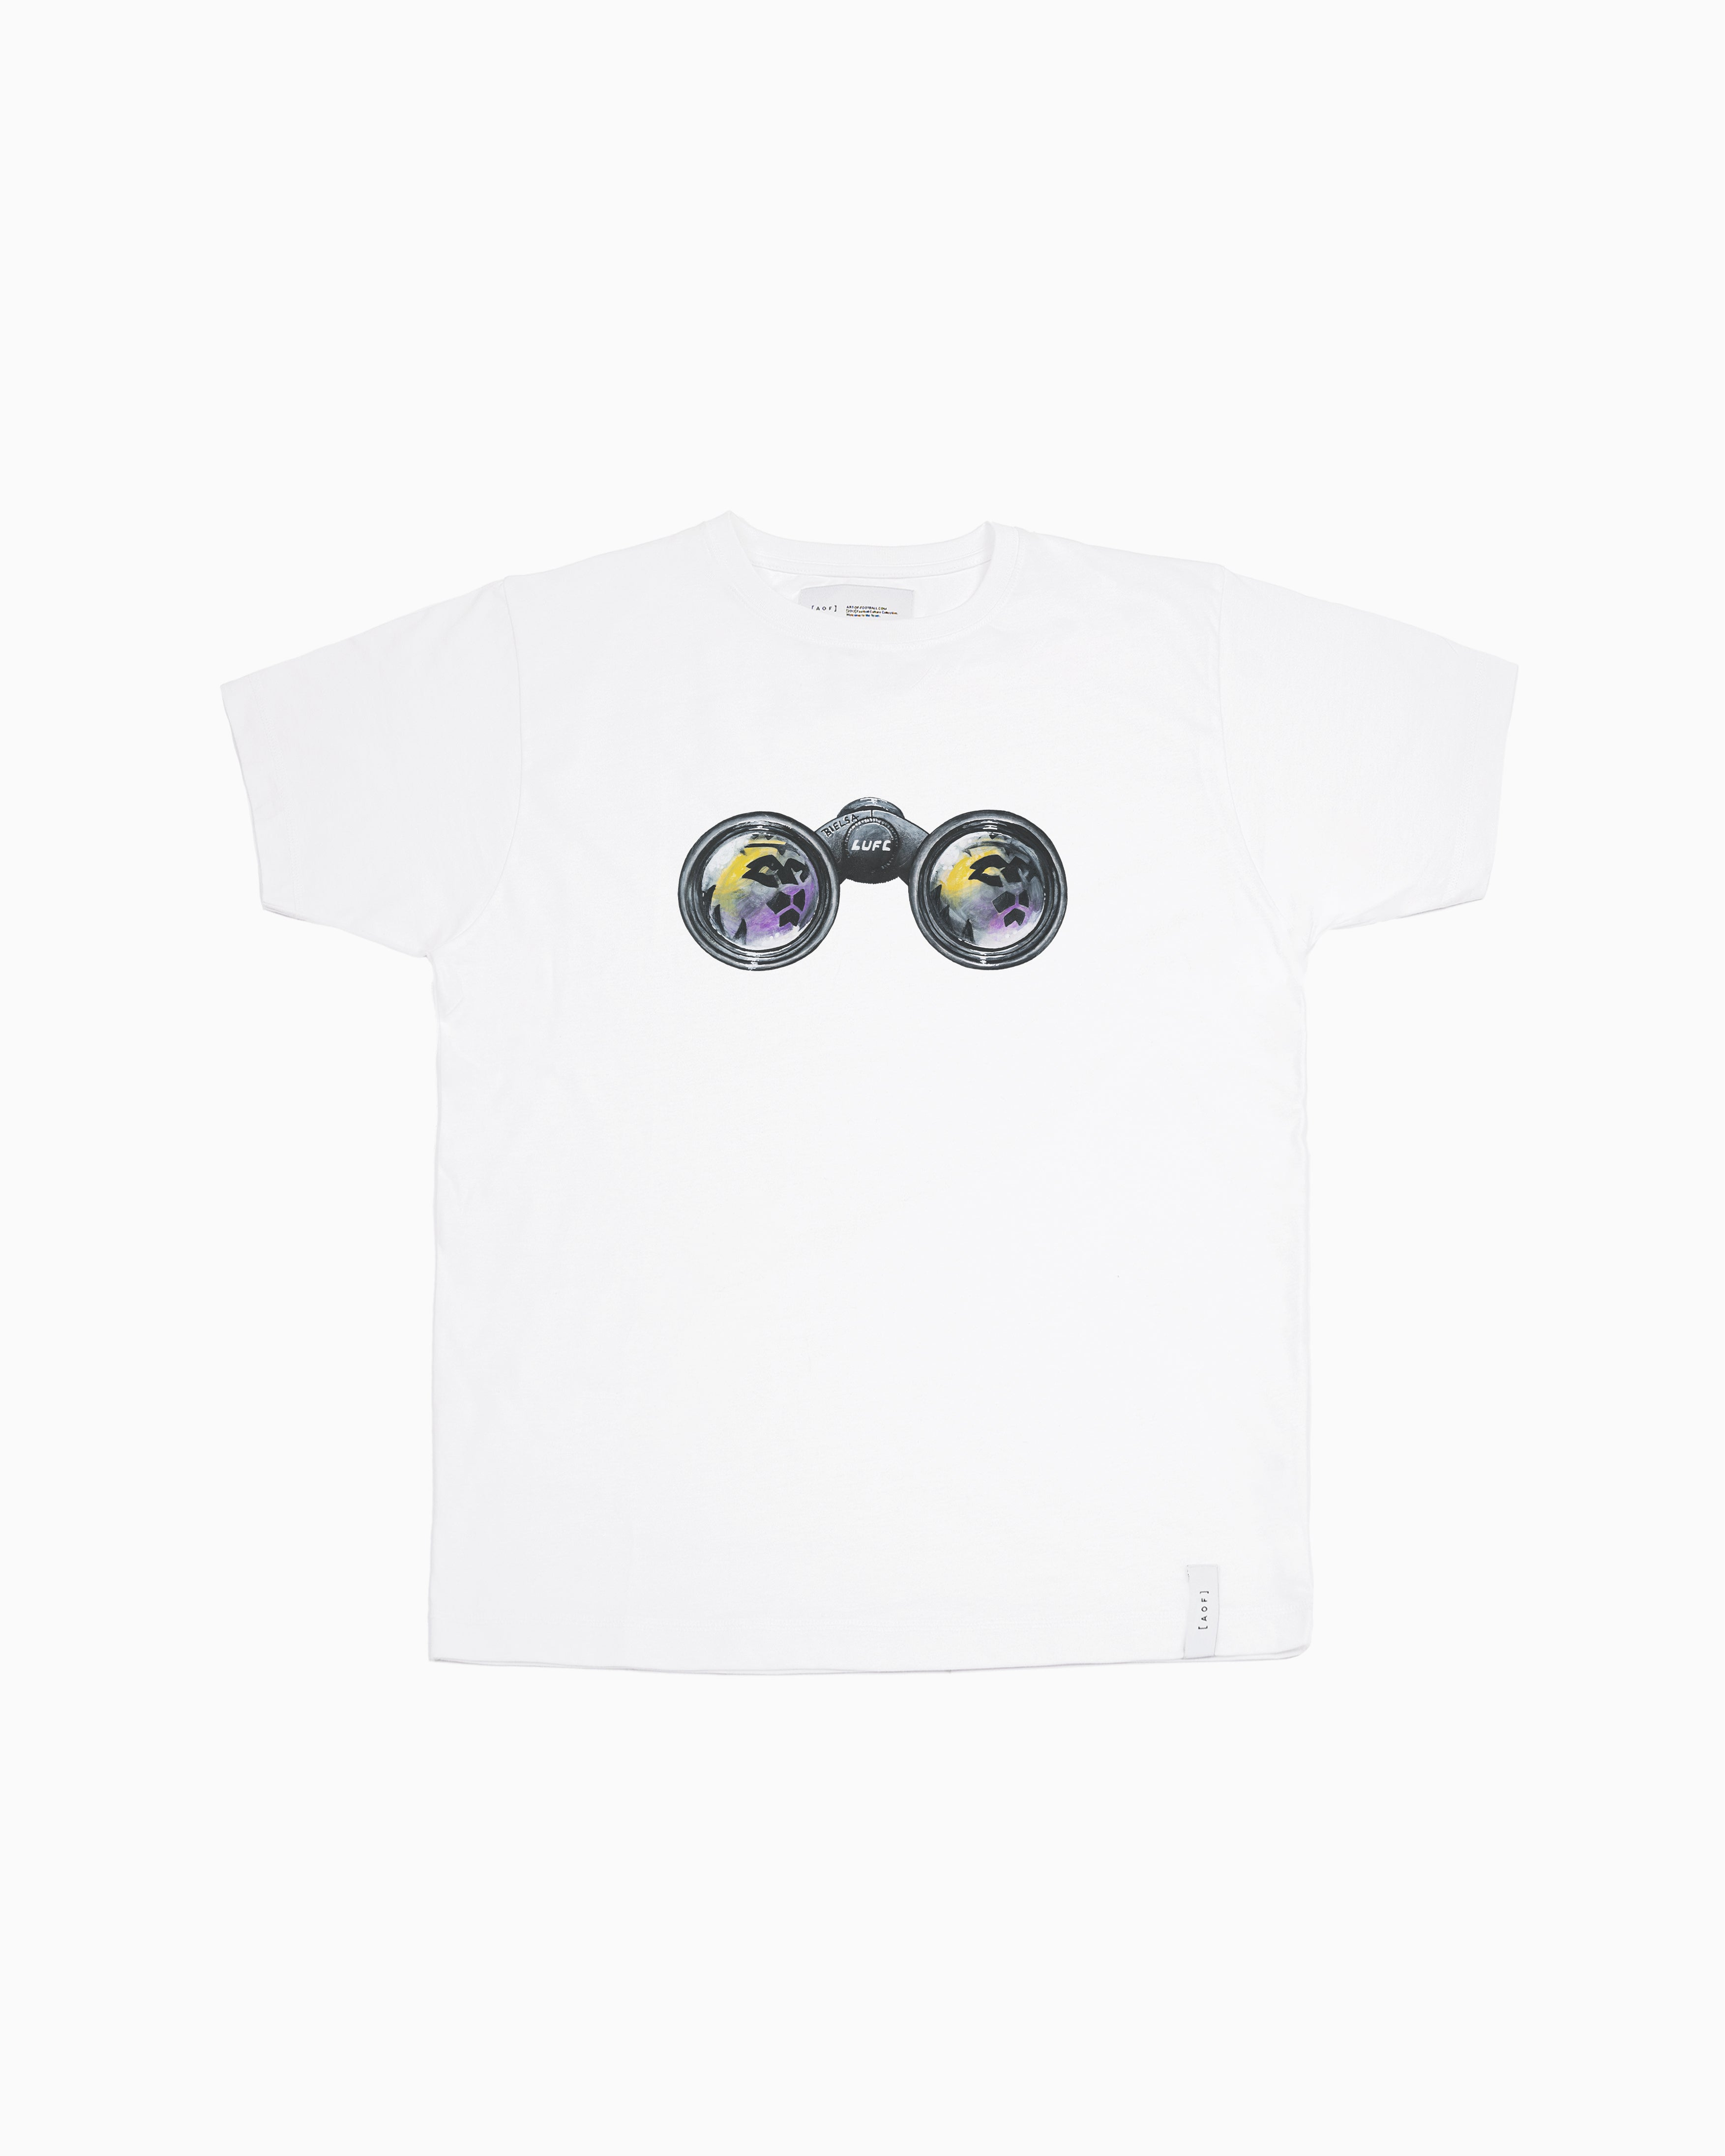 Bielsa's Binoculars - Tee or Sweat